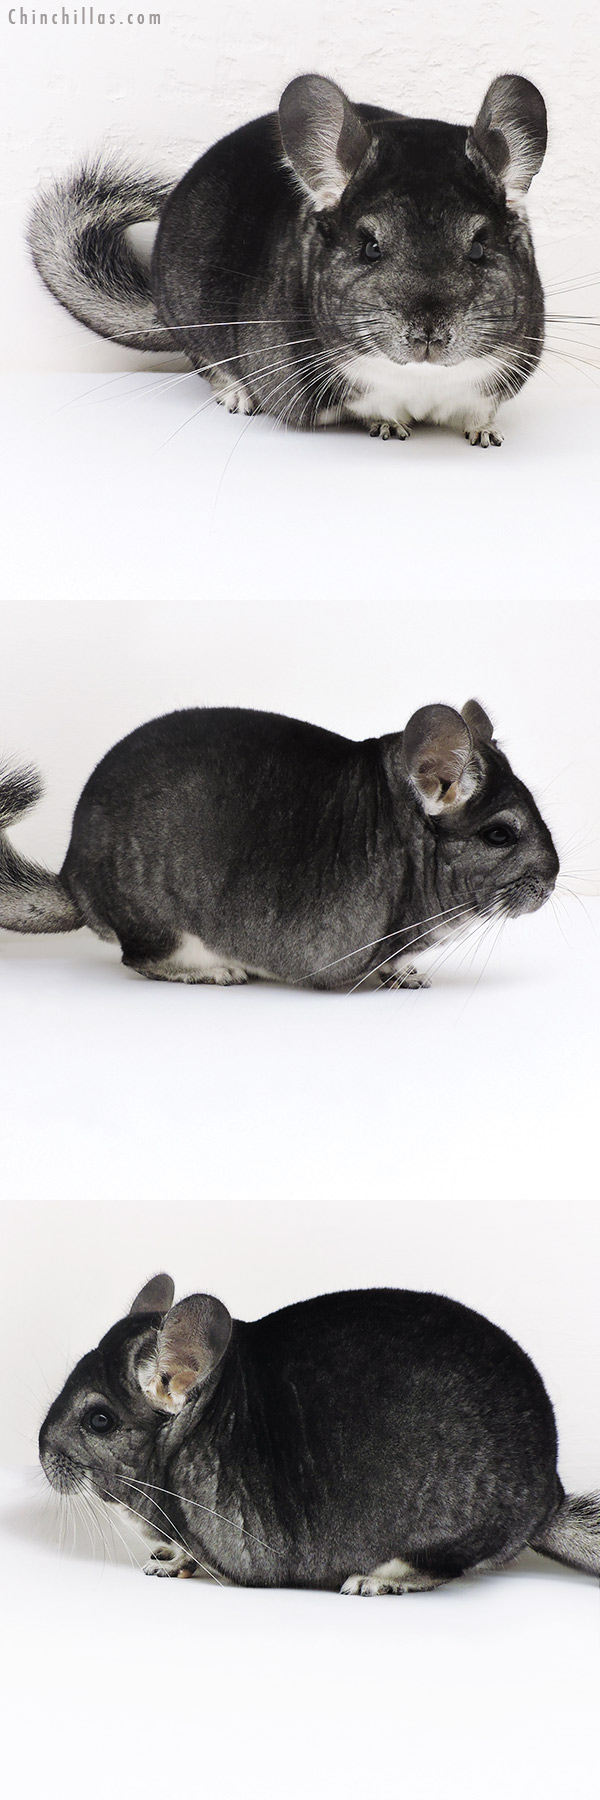 17132 Large Herd Improvement Quality Standard Male Chinchilla